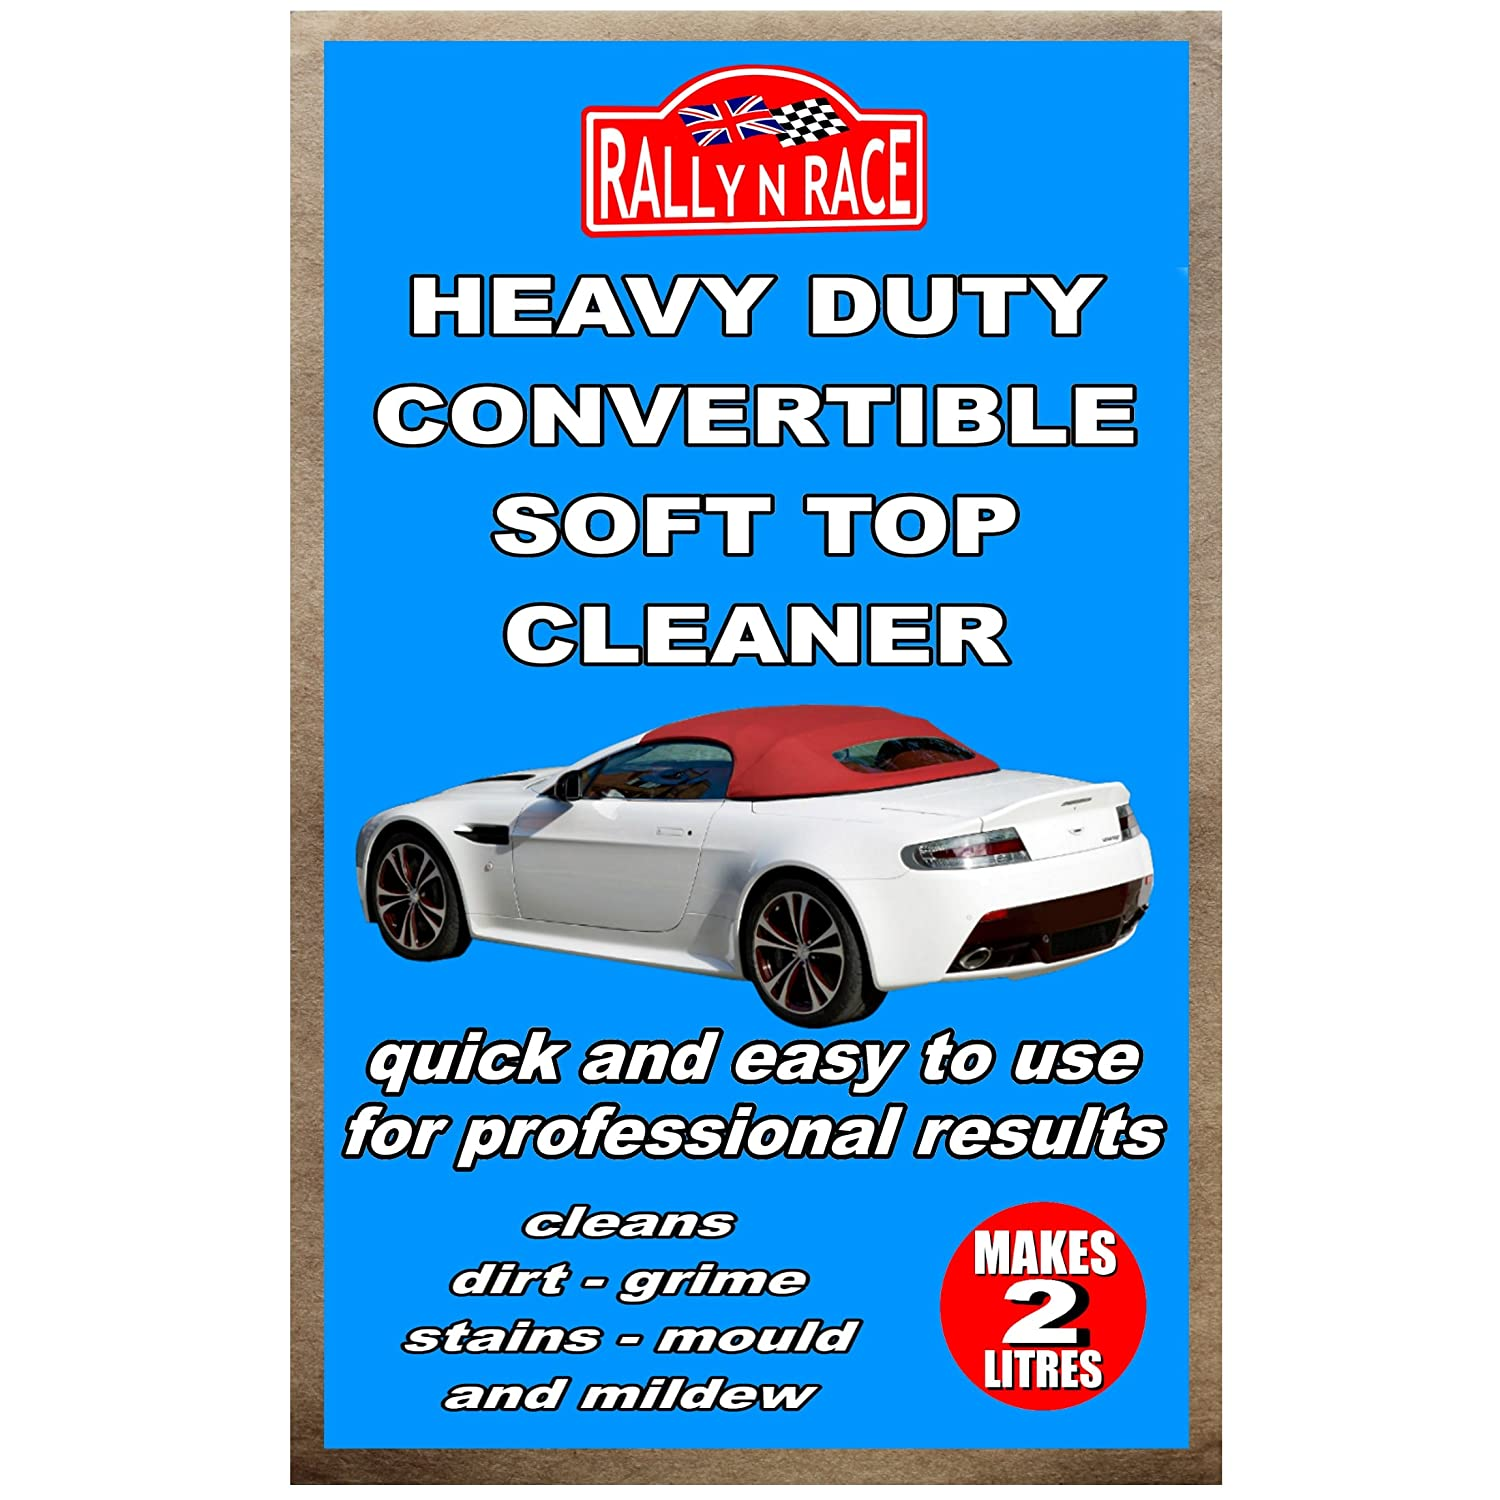 Rally N Race Heavy Duty Convertible Soft Top Cleaner SafeWay Wood Care